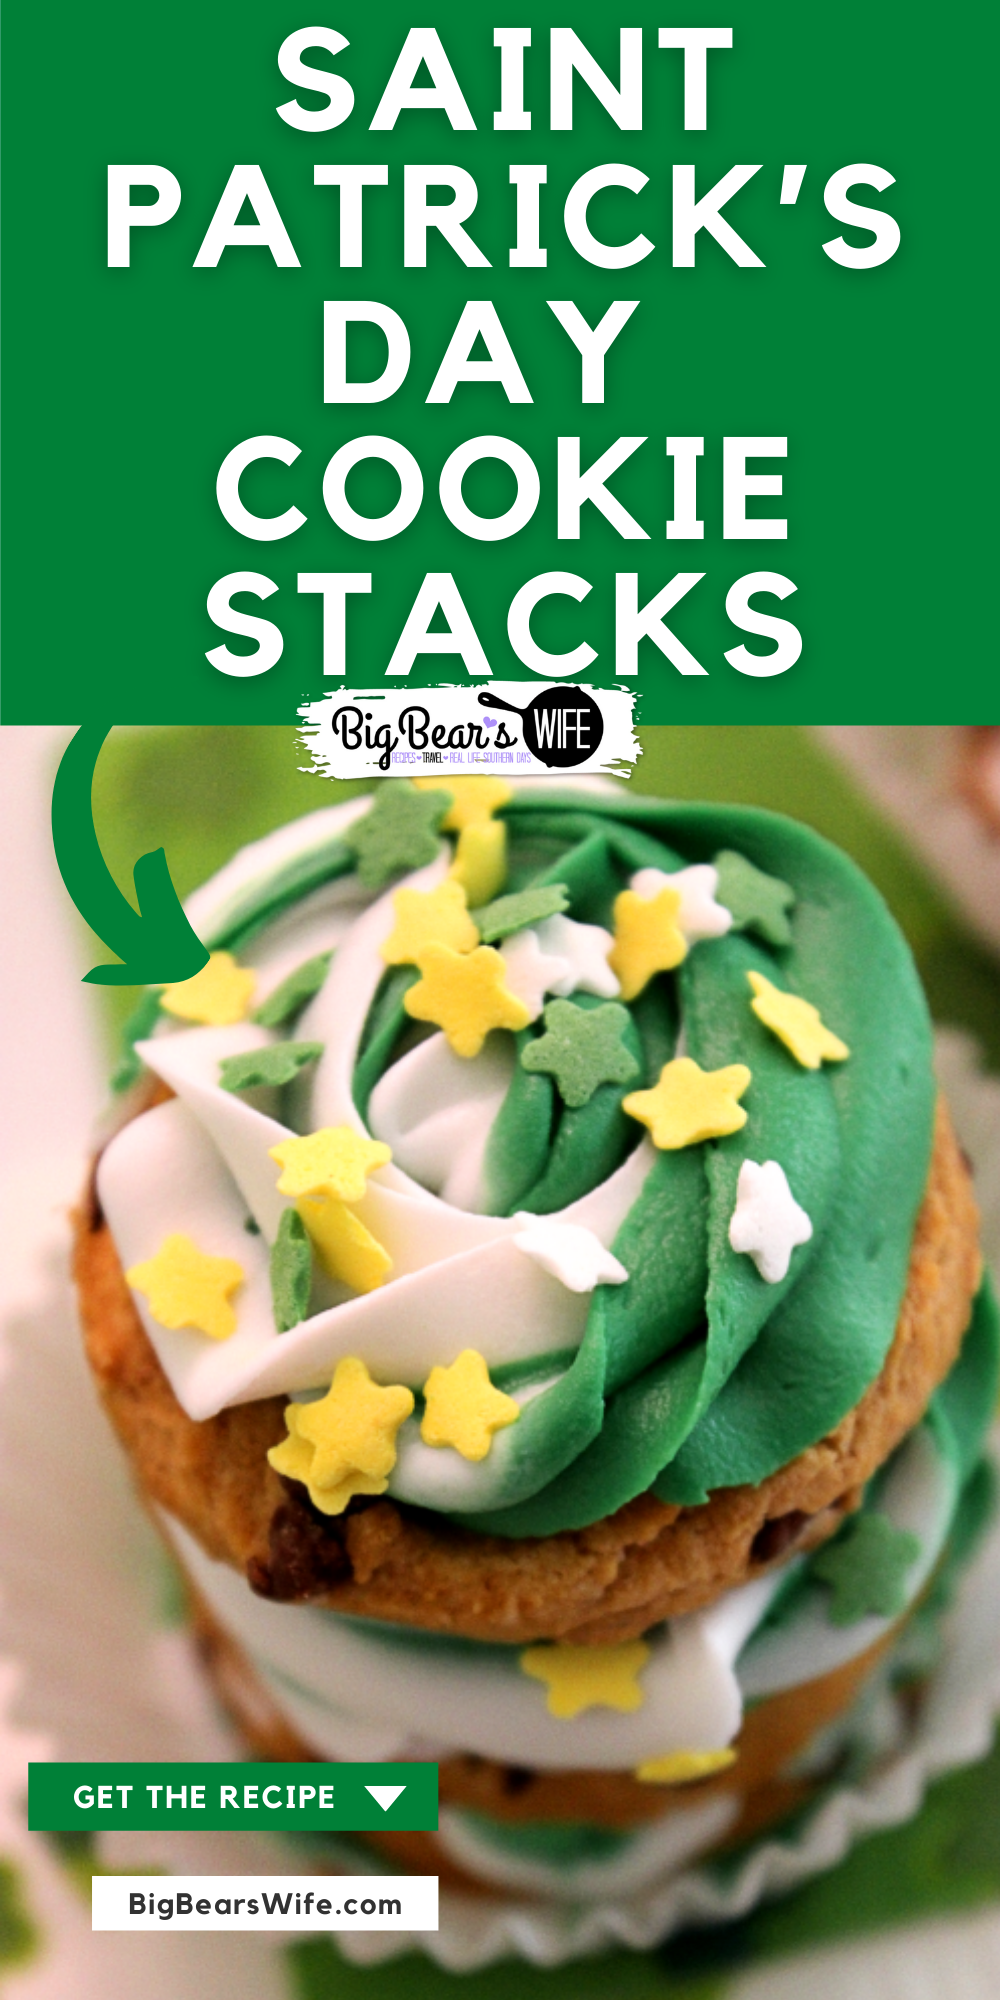 No need to go super crazy with the St. Patricks Day treats! Sometimes, simple is best! These no bake Saint Patrick's Day Cookie Stacks are easy to decorate and fun to eat! via @bigbearswife